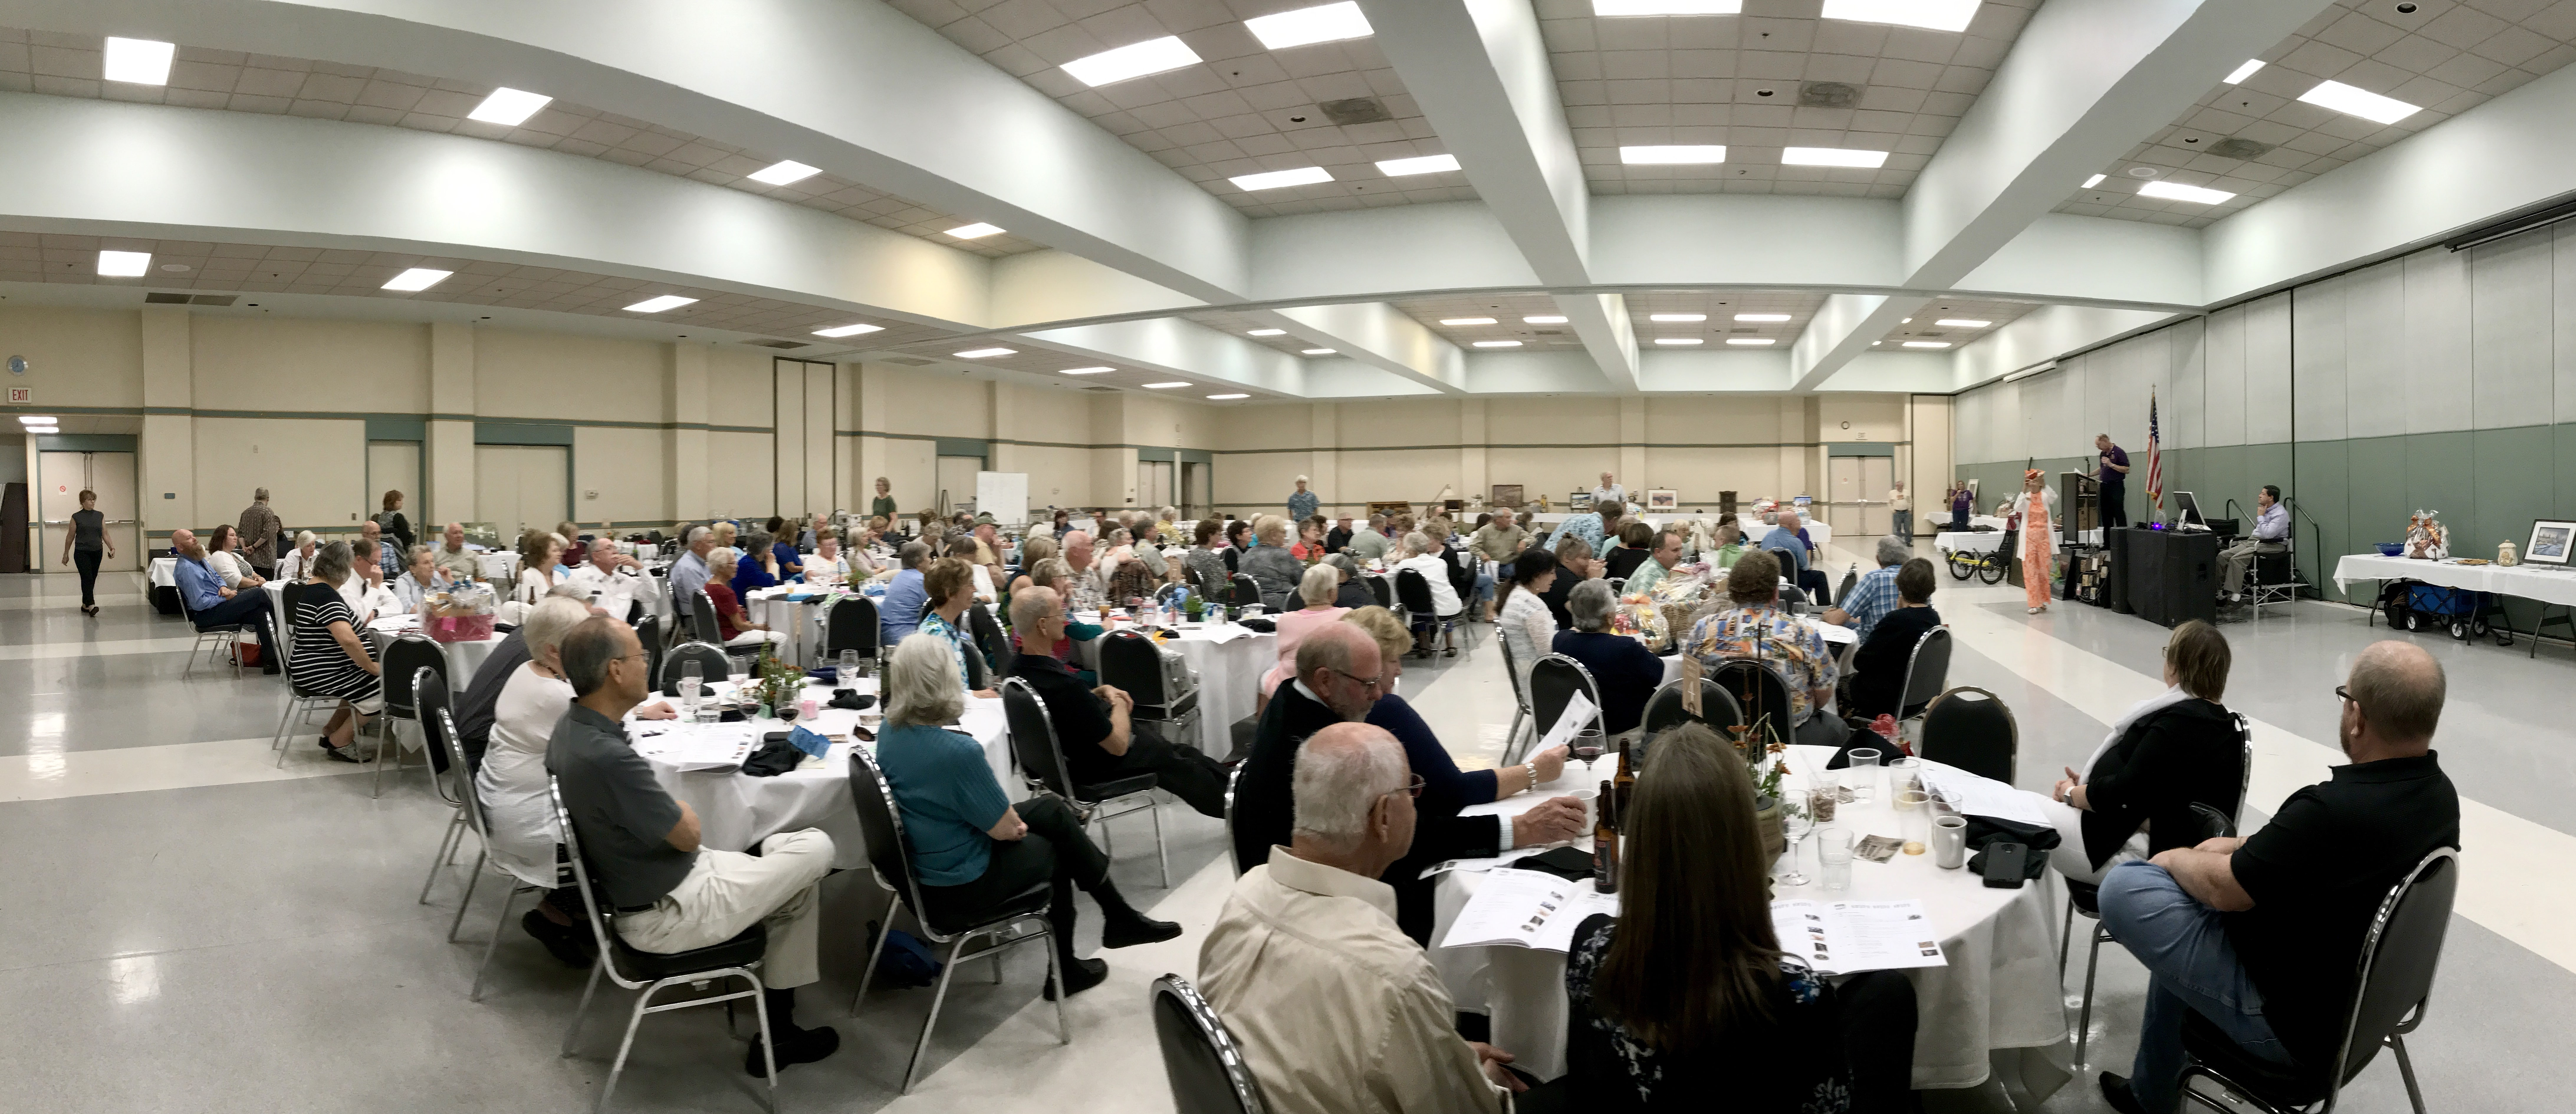 dinner and auction pano